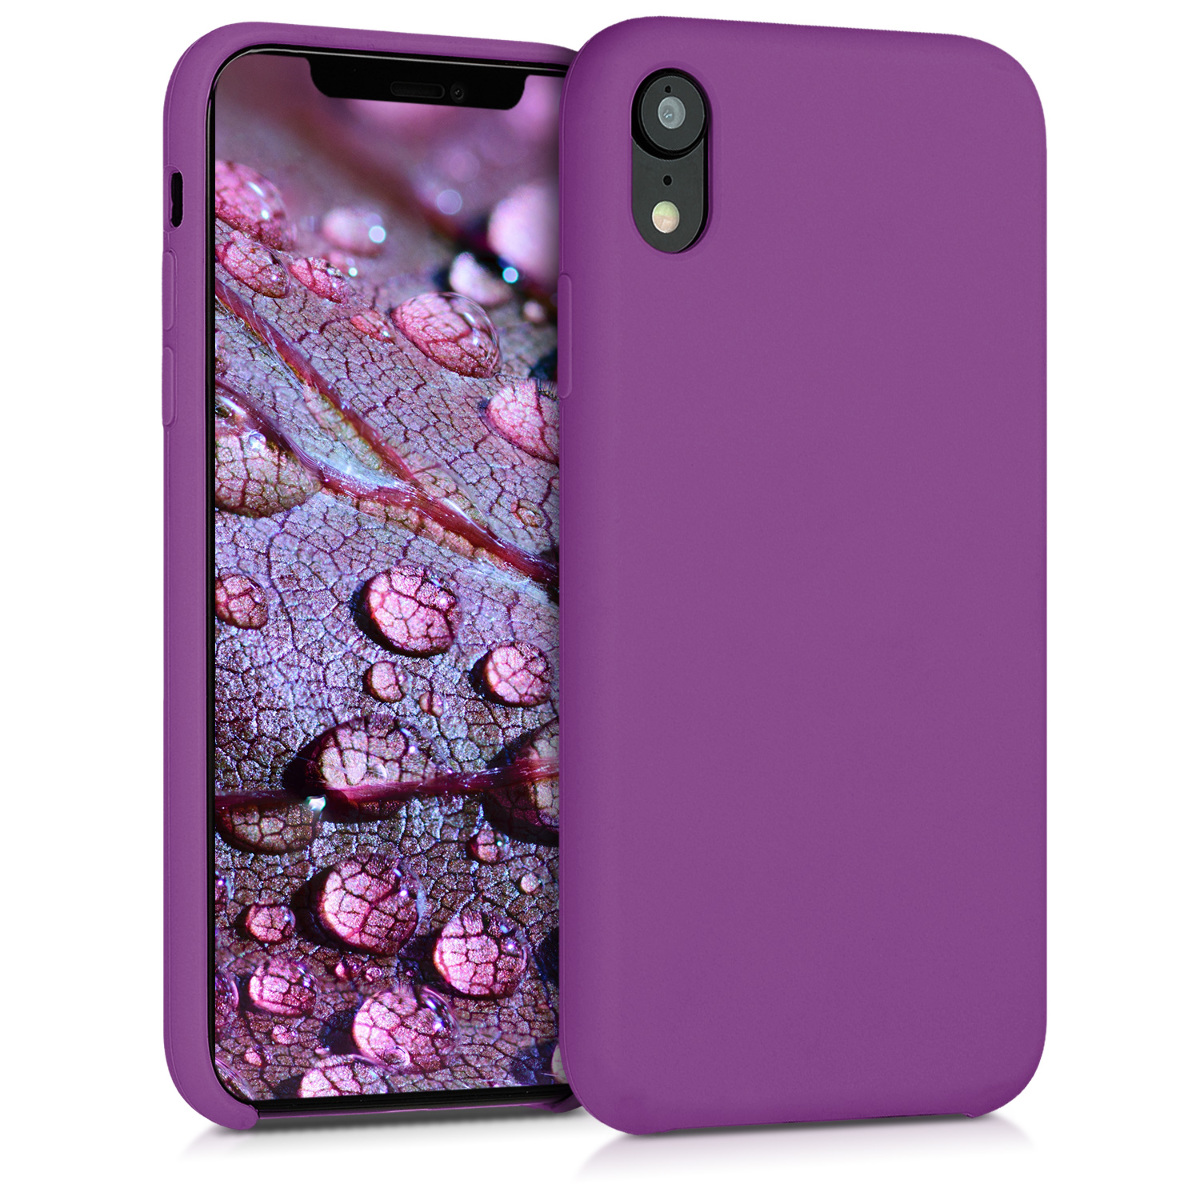 KW Θήκη Σιλικόνης iPhone XR - Soft Flexible Rubber Protective Cover - Pastel Purple - (45910.102)